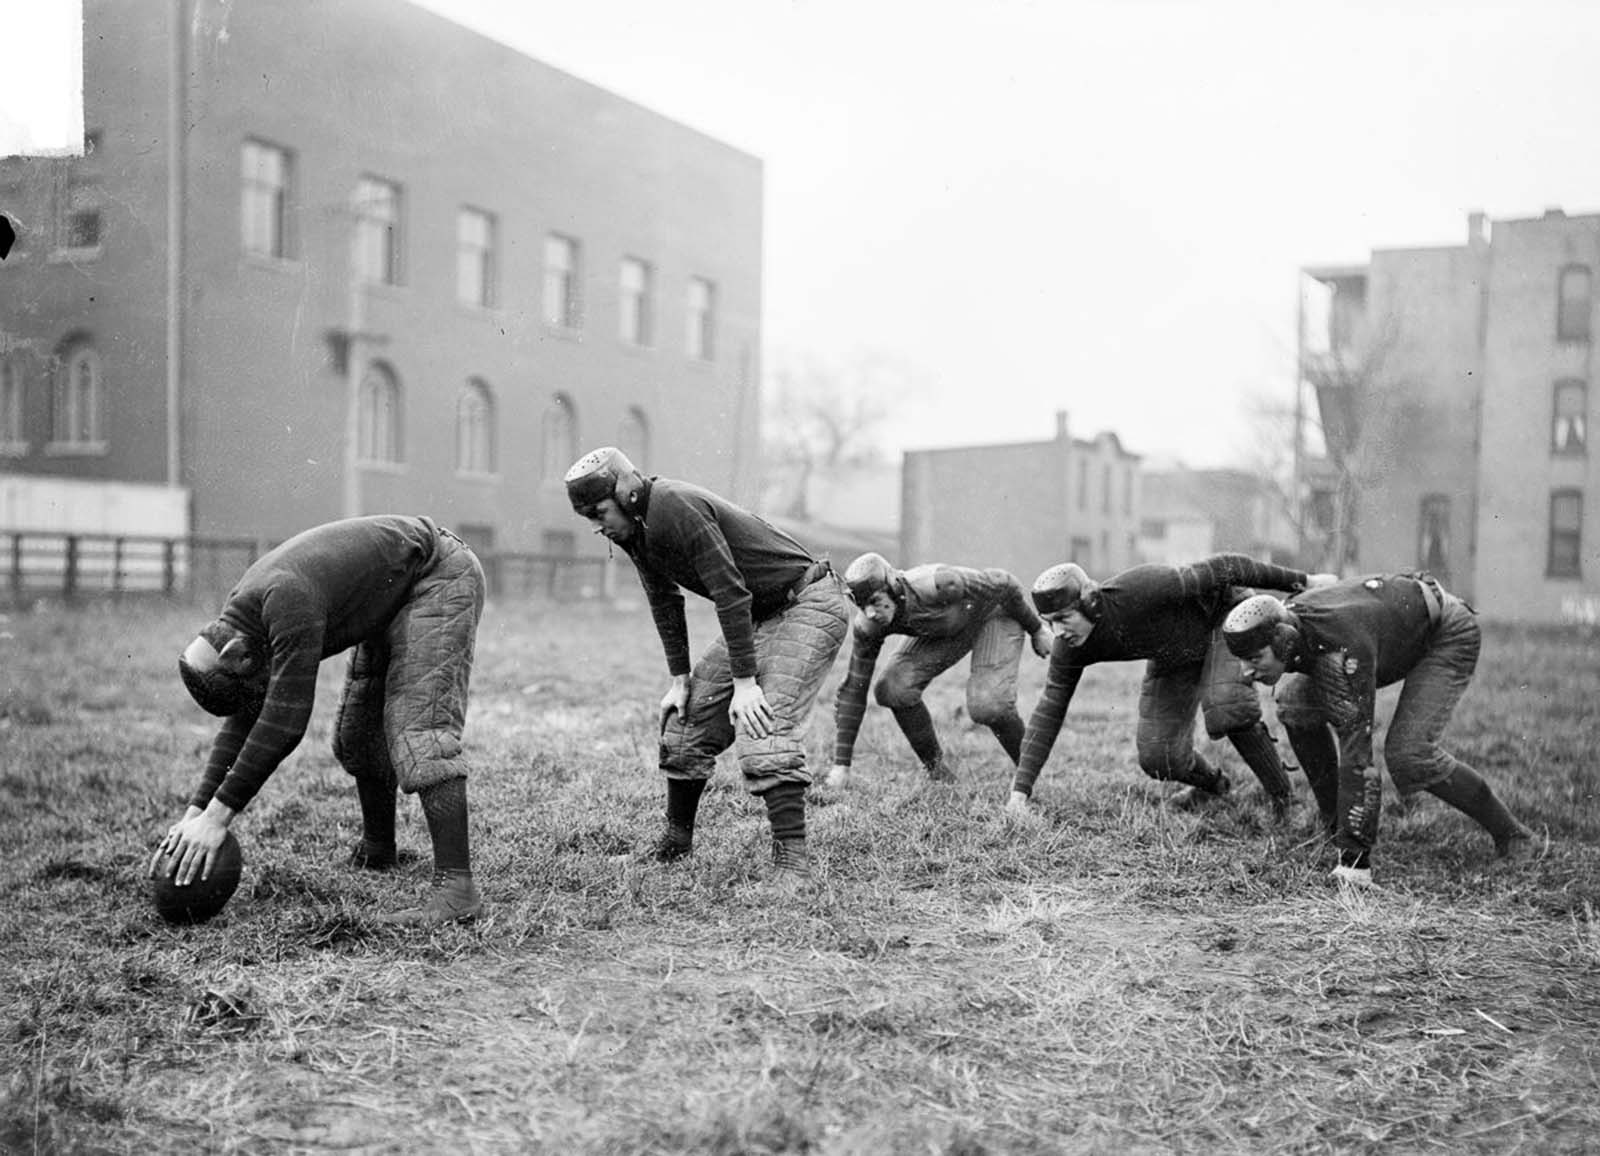 High school football players practice in Chicago. 1902.